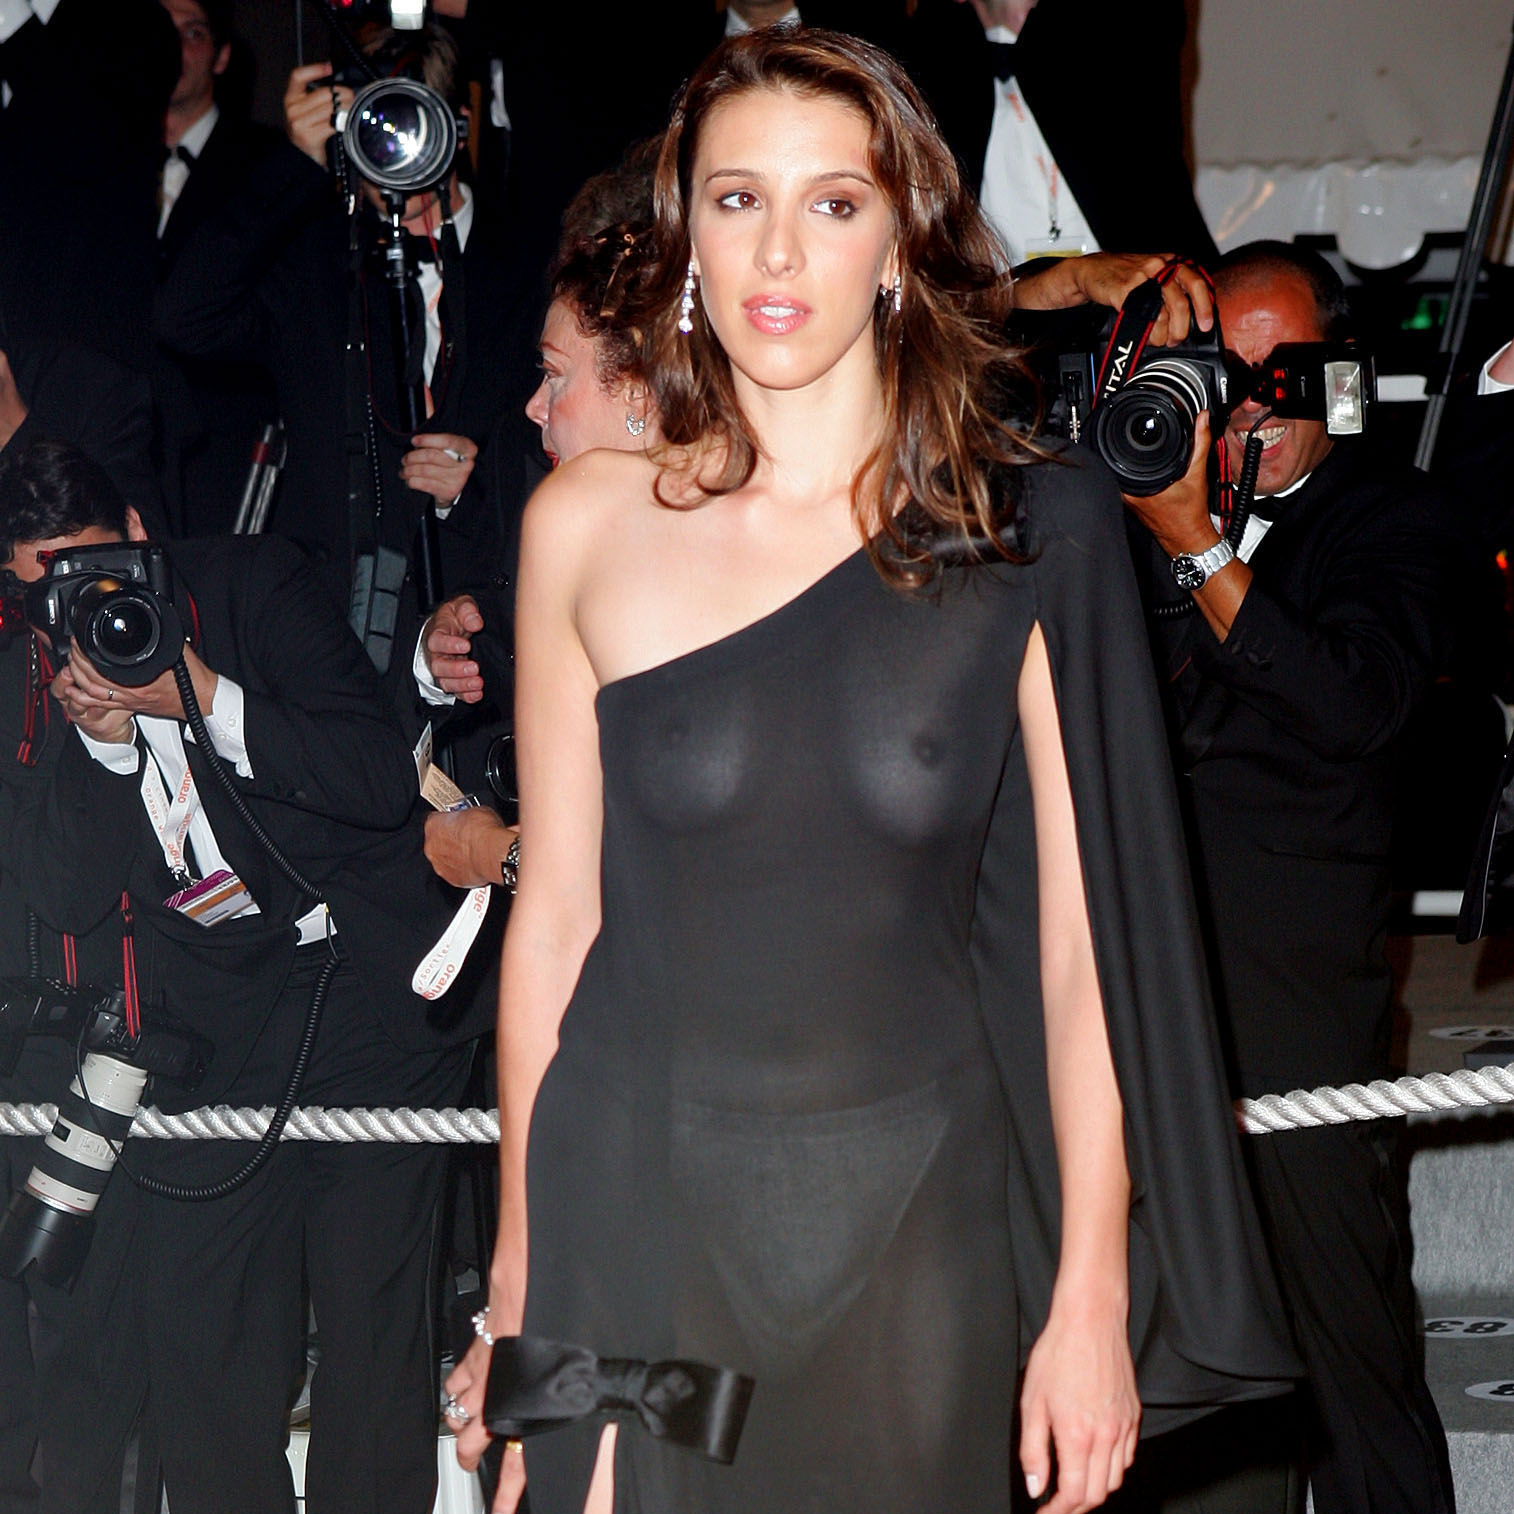 Alexandra Kerry accidentally displaying her boobs in her transparent dress in an award function